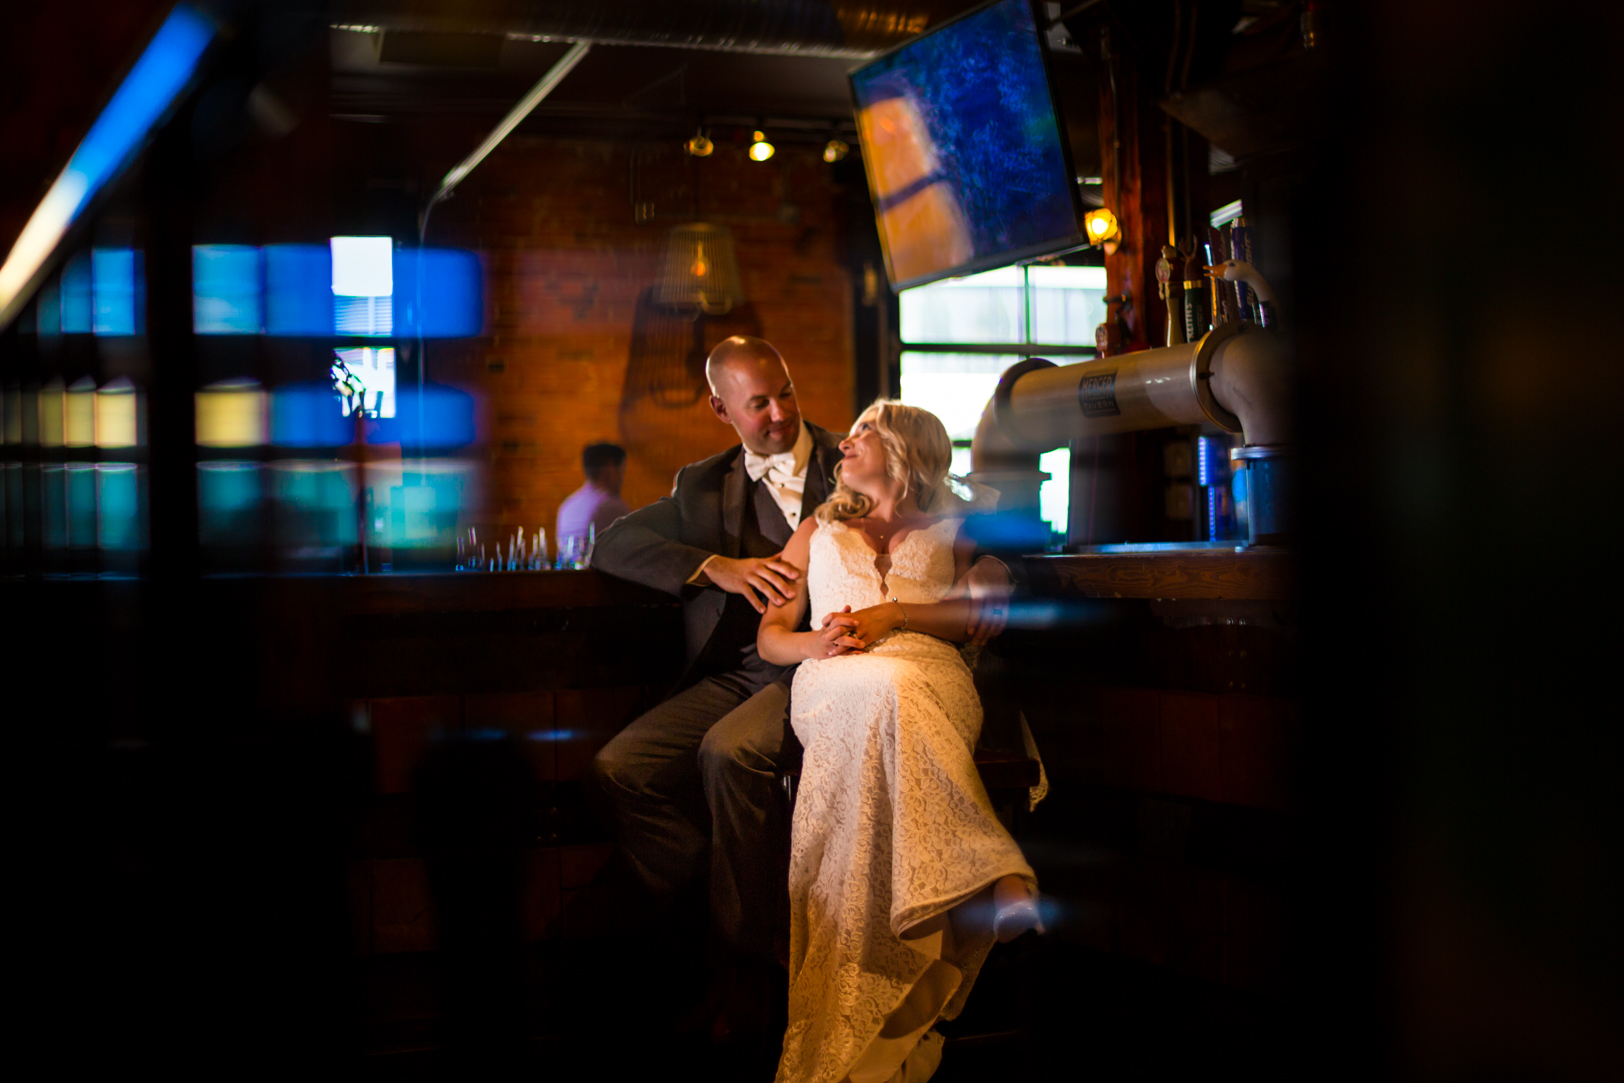 Wedding Photos at Mercer Tavern